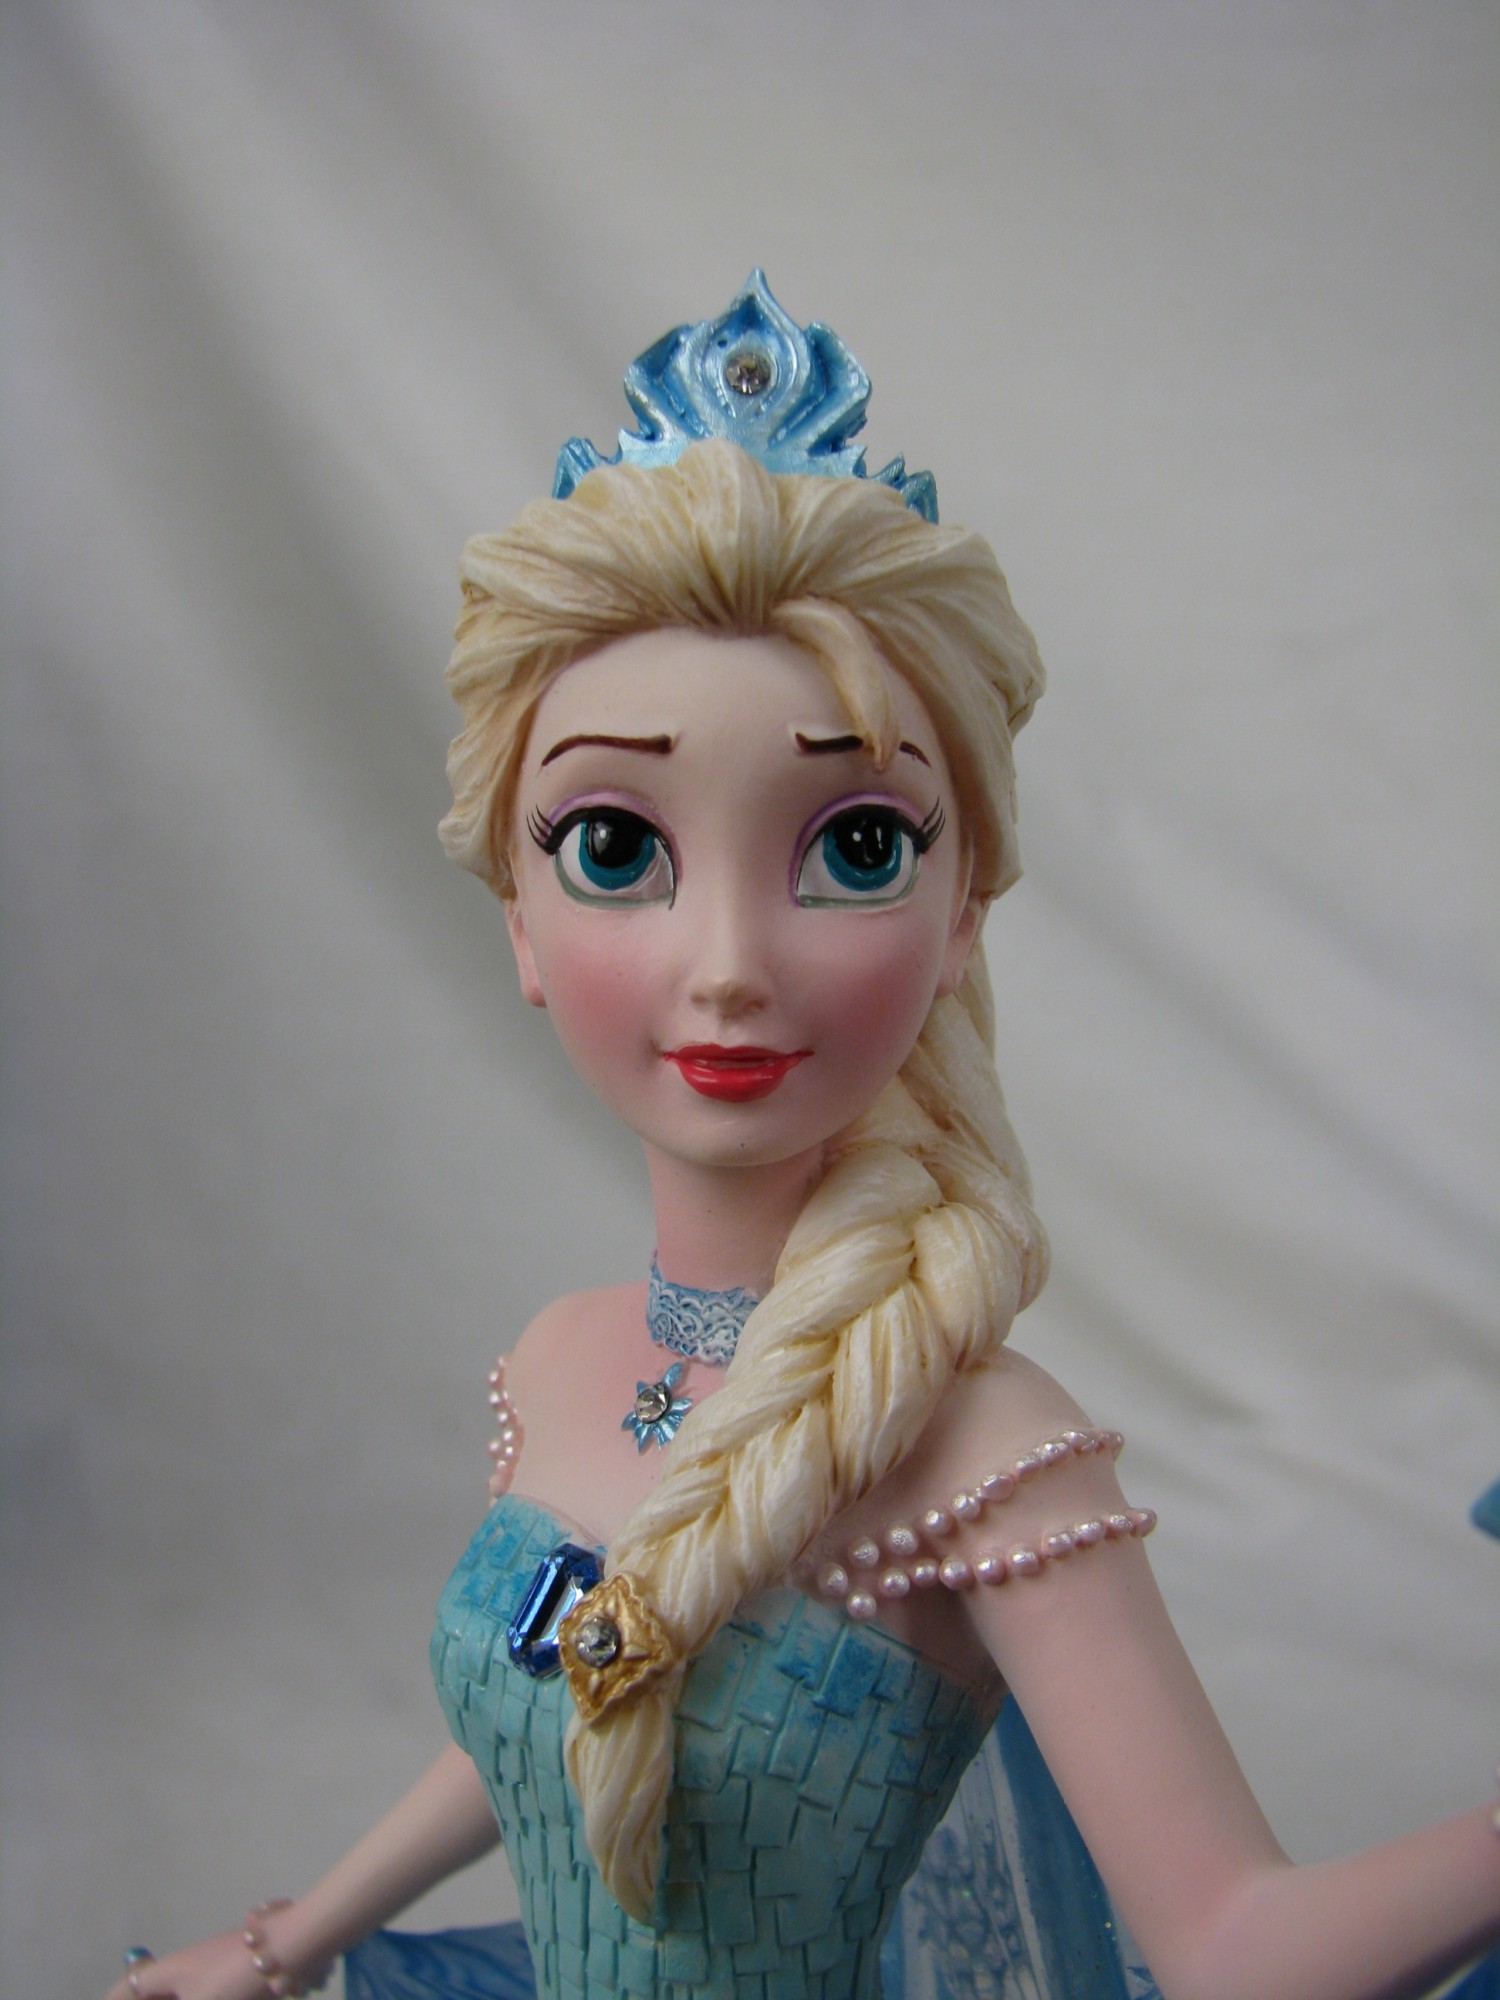 Queen Elsa And Princess Anna Are Truly A Force To Be